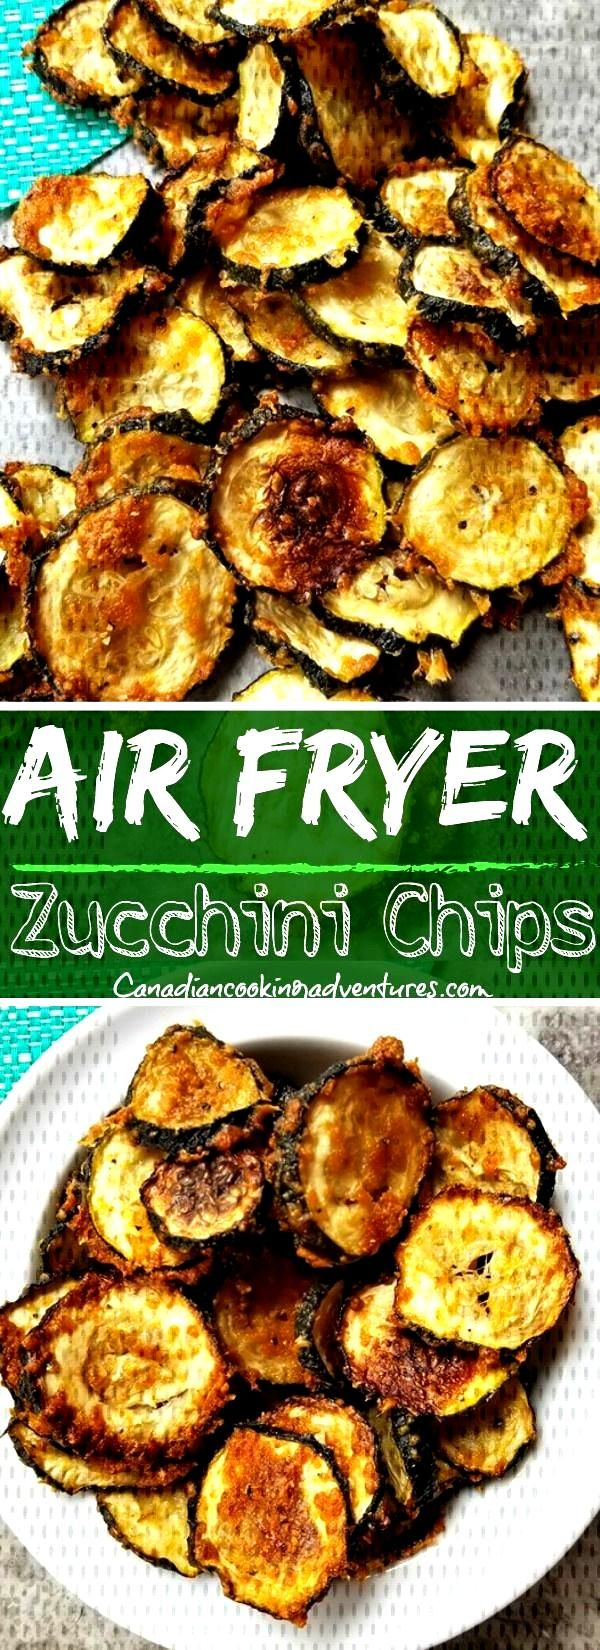 Air Fryer Zucchini Chips I wouldn't dehydrate zucchini unless I grew too many ~